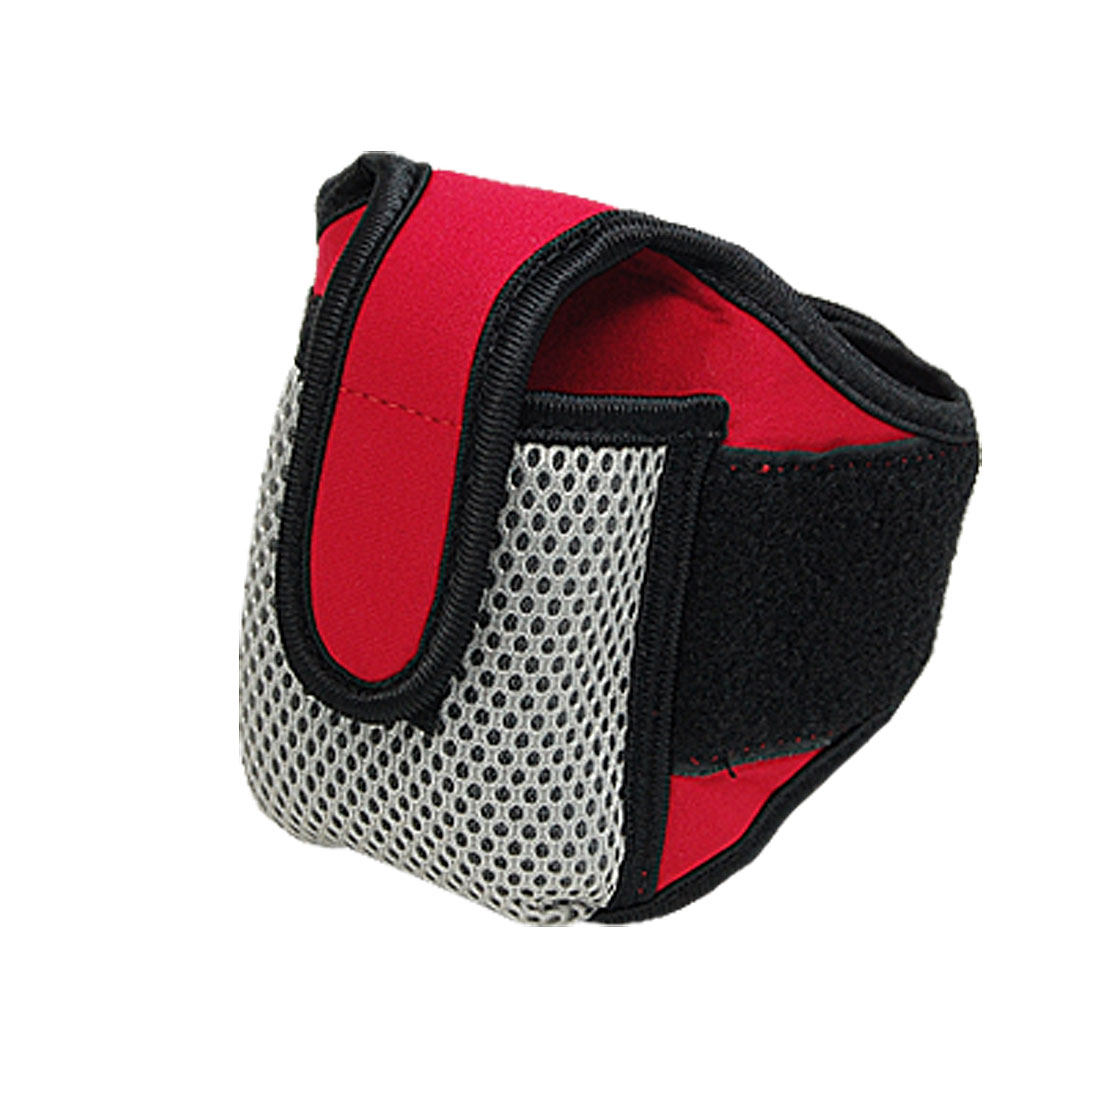 Cellphone MP3 MP4 Player Adjustable Sports Arm Bag Pouch